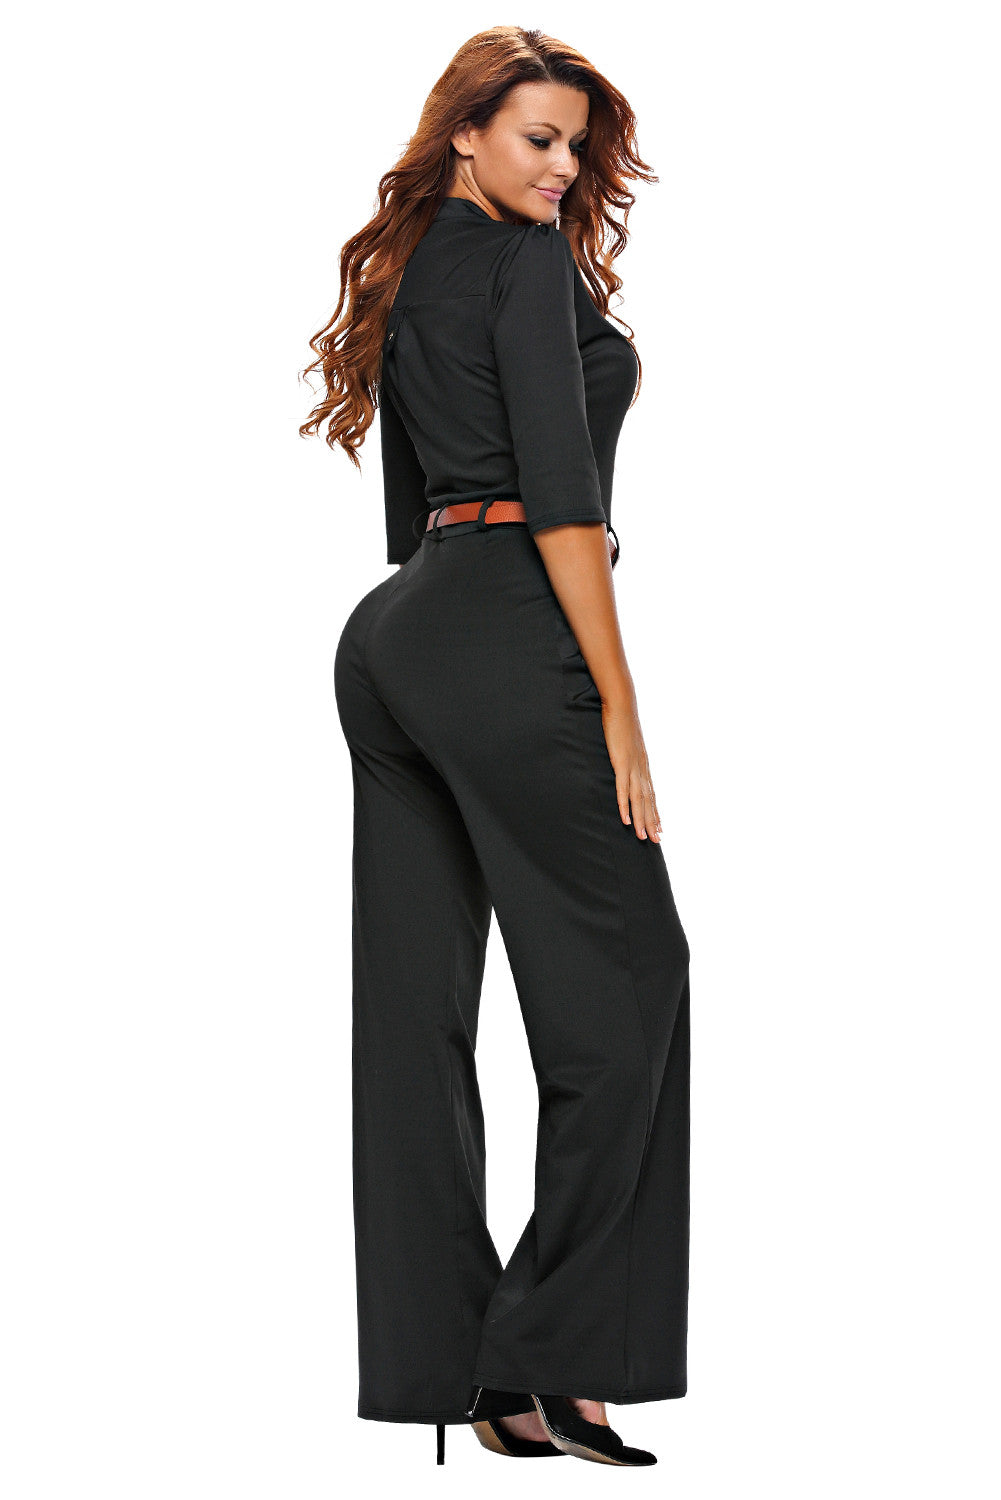 Half Sleeve Diva Fashion Wide Leg Jumpsuit 64205 - IBL Fashion - 6